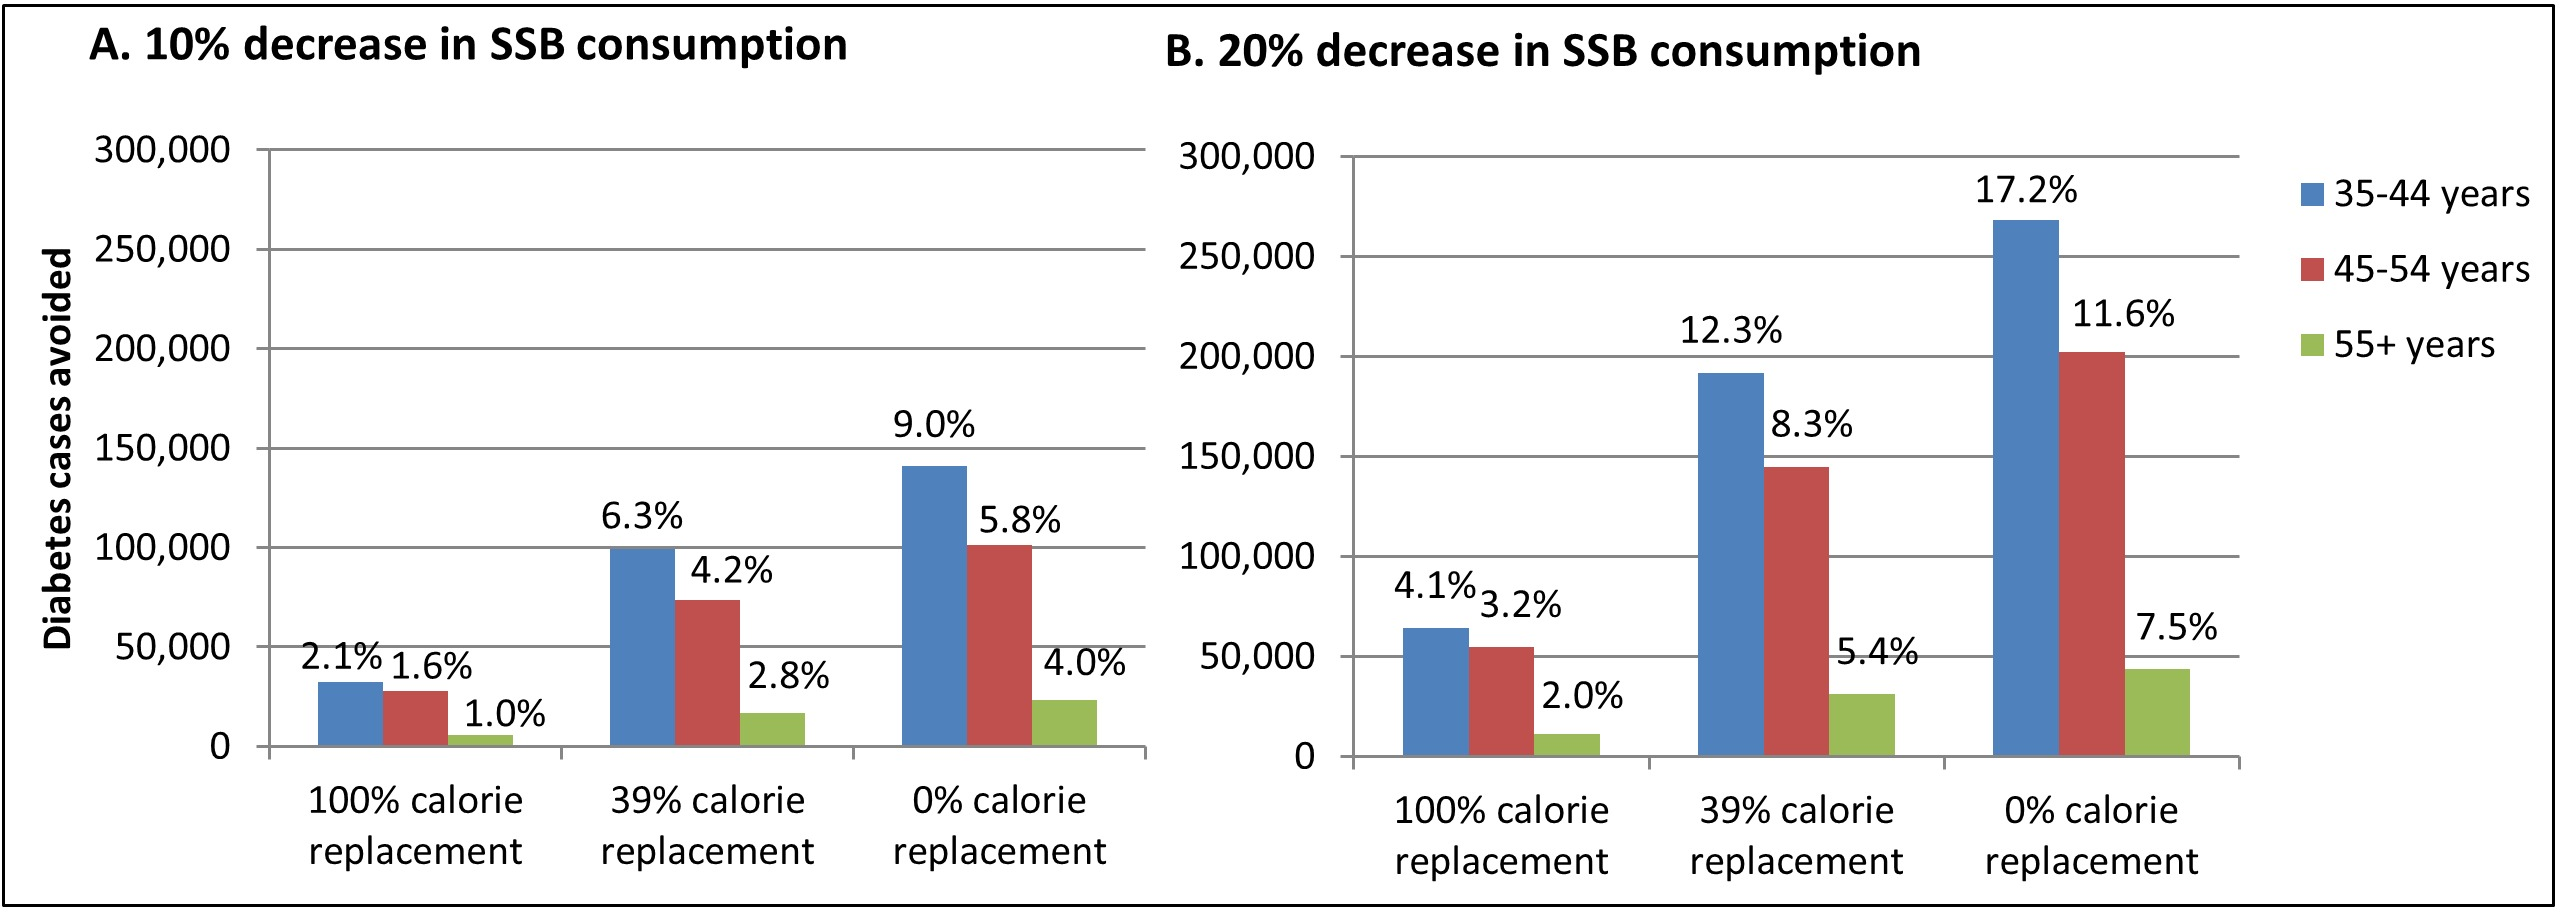 Incident cases of diabetes prevented during 2013–2022 under different intervention scenarios, with results for each scenario stratified by age group.